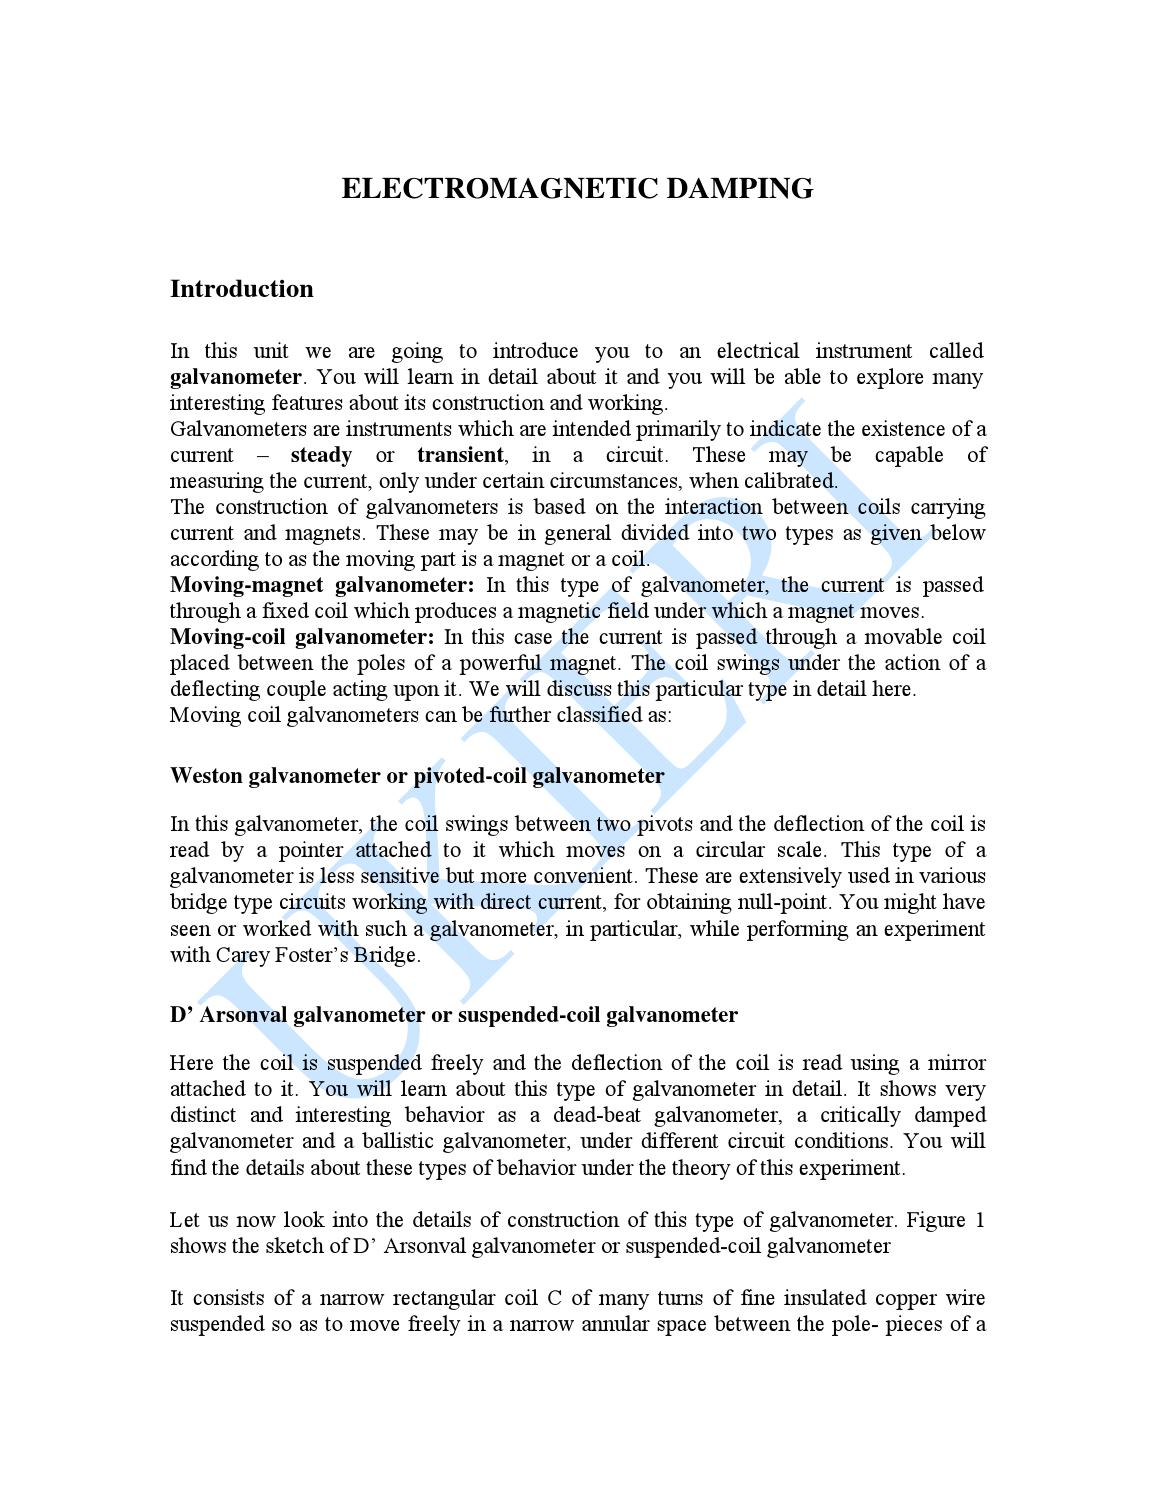 Electromagnetic damping by Chem Engine - issuu